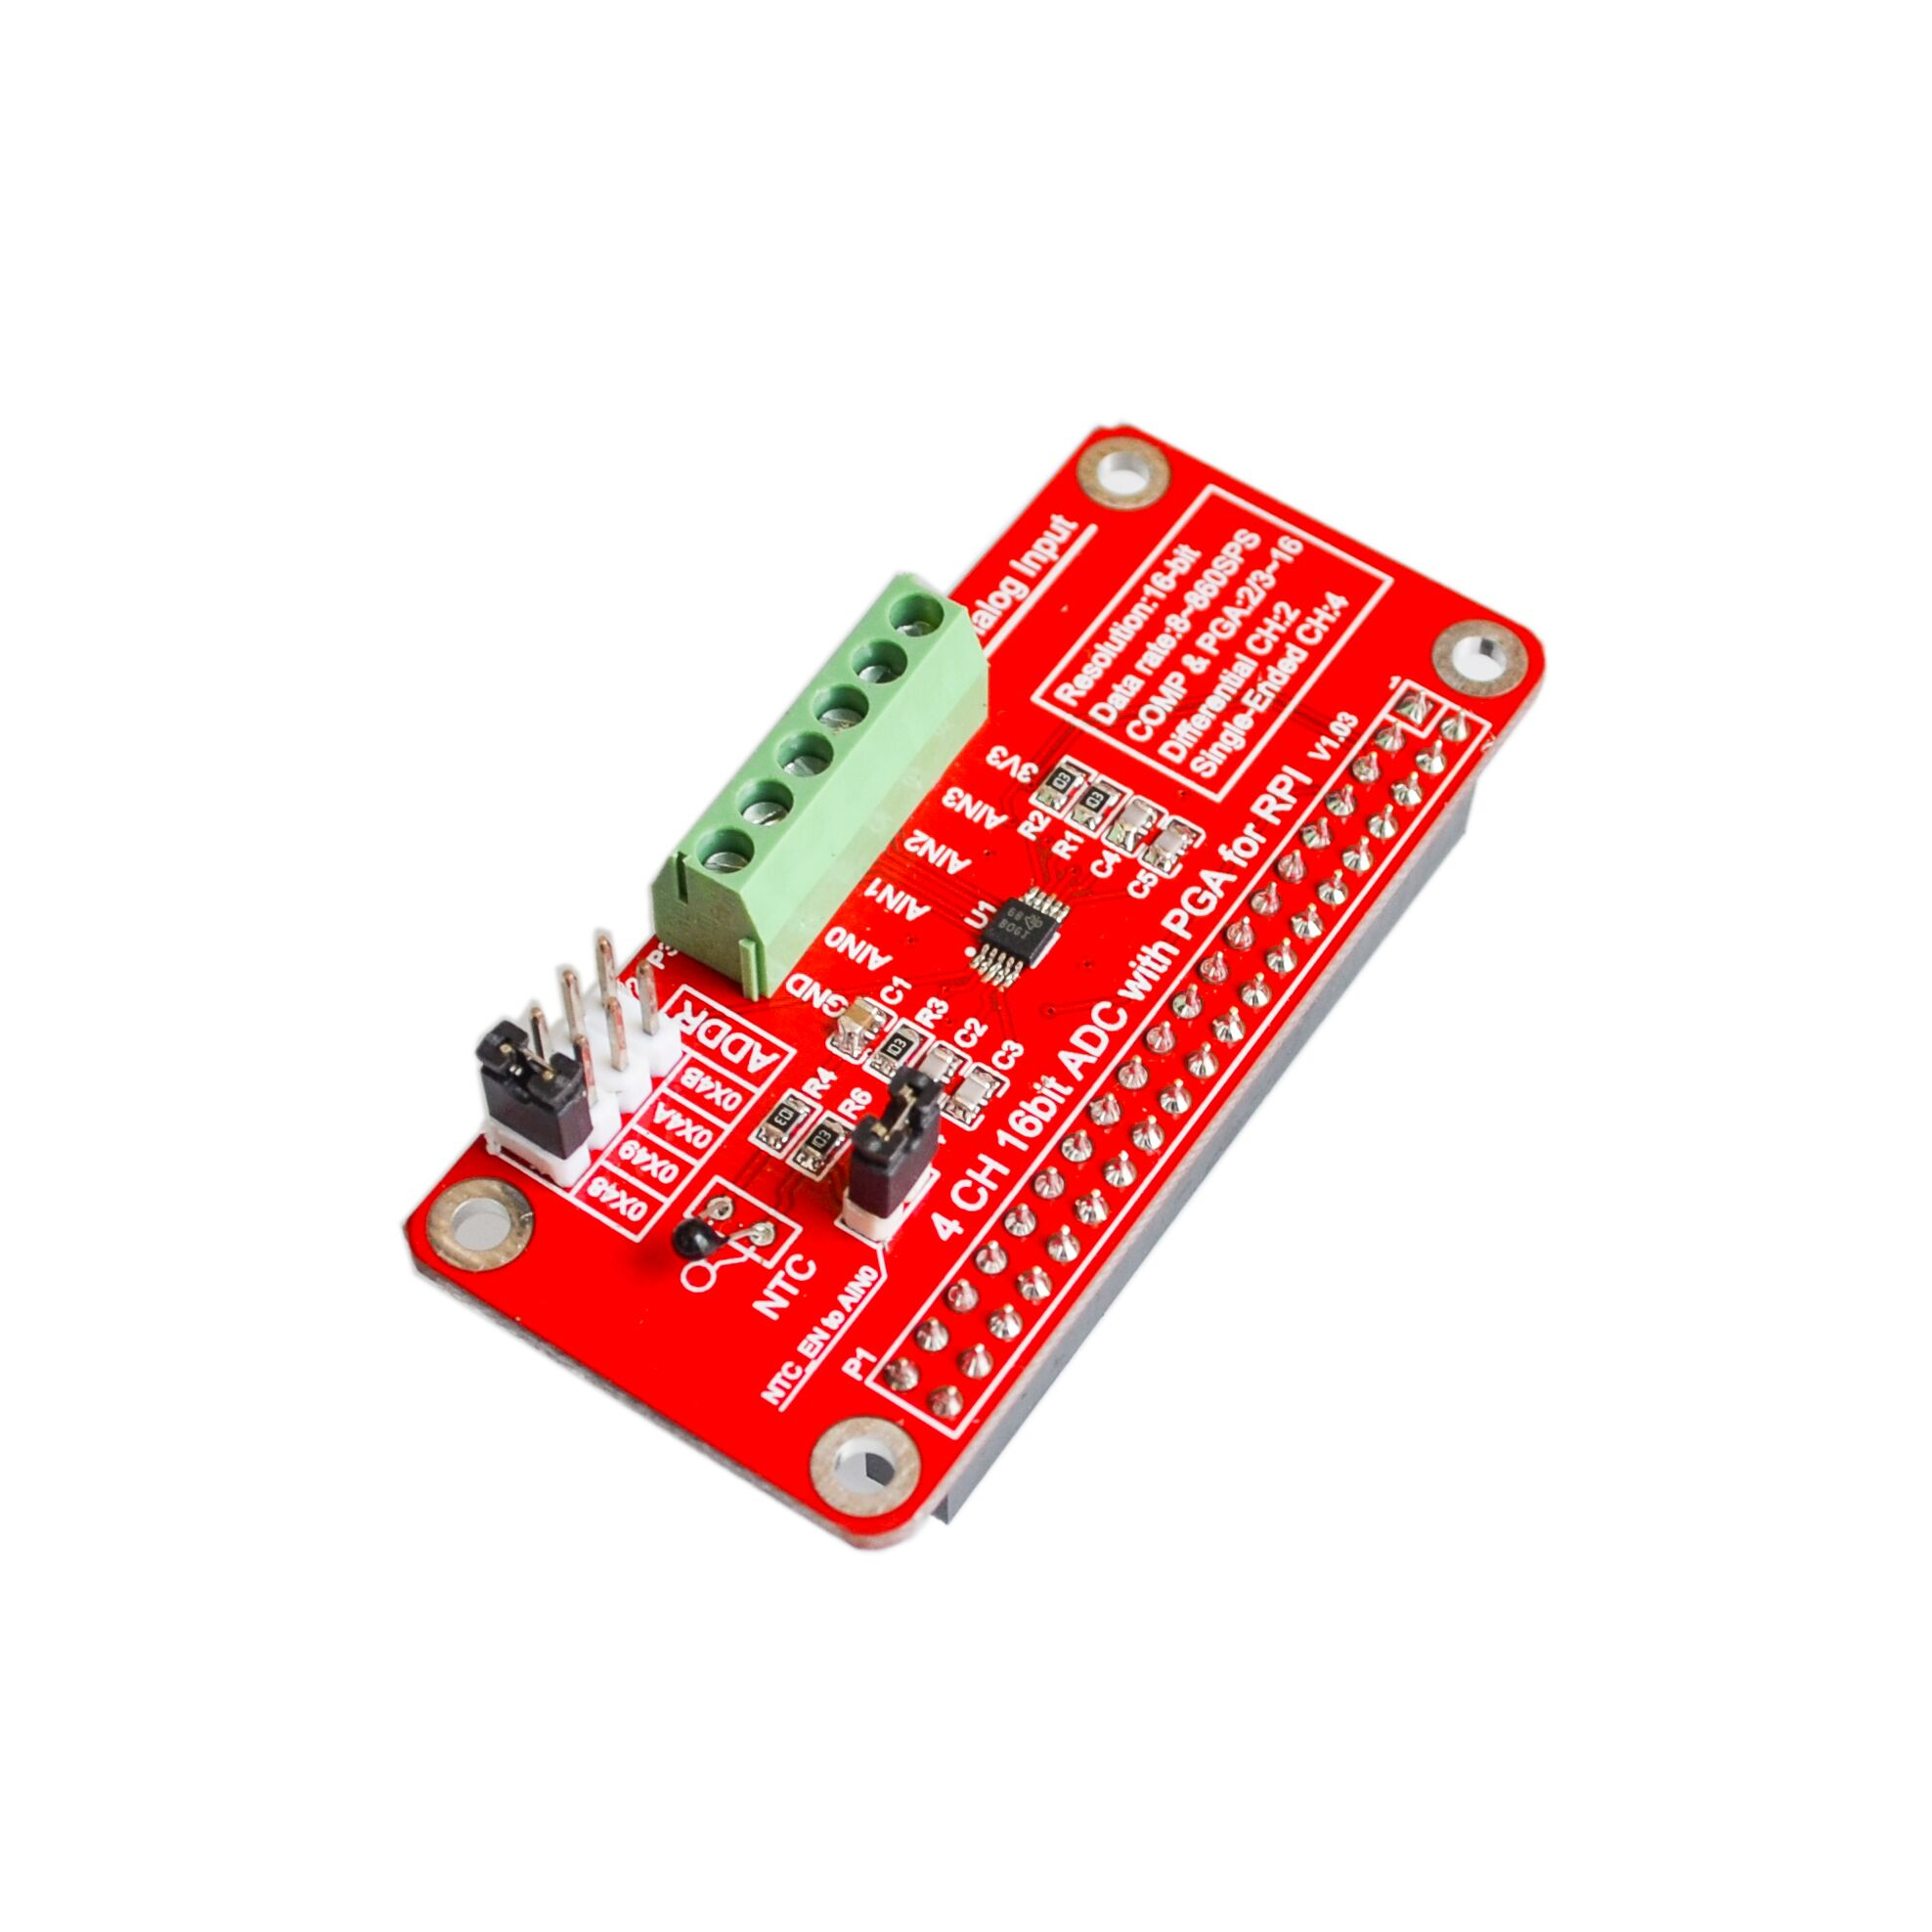 16 Bits I2C ADS1115 Module ADC 4 Channel for Raspberry Pi 3/2 Model B/B+16 Bits I2C ADS1115 Module ADC 4 Channel for Raspberry Pi 3/2 Model B/B+